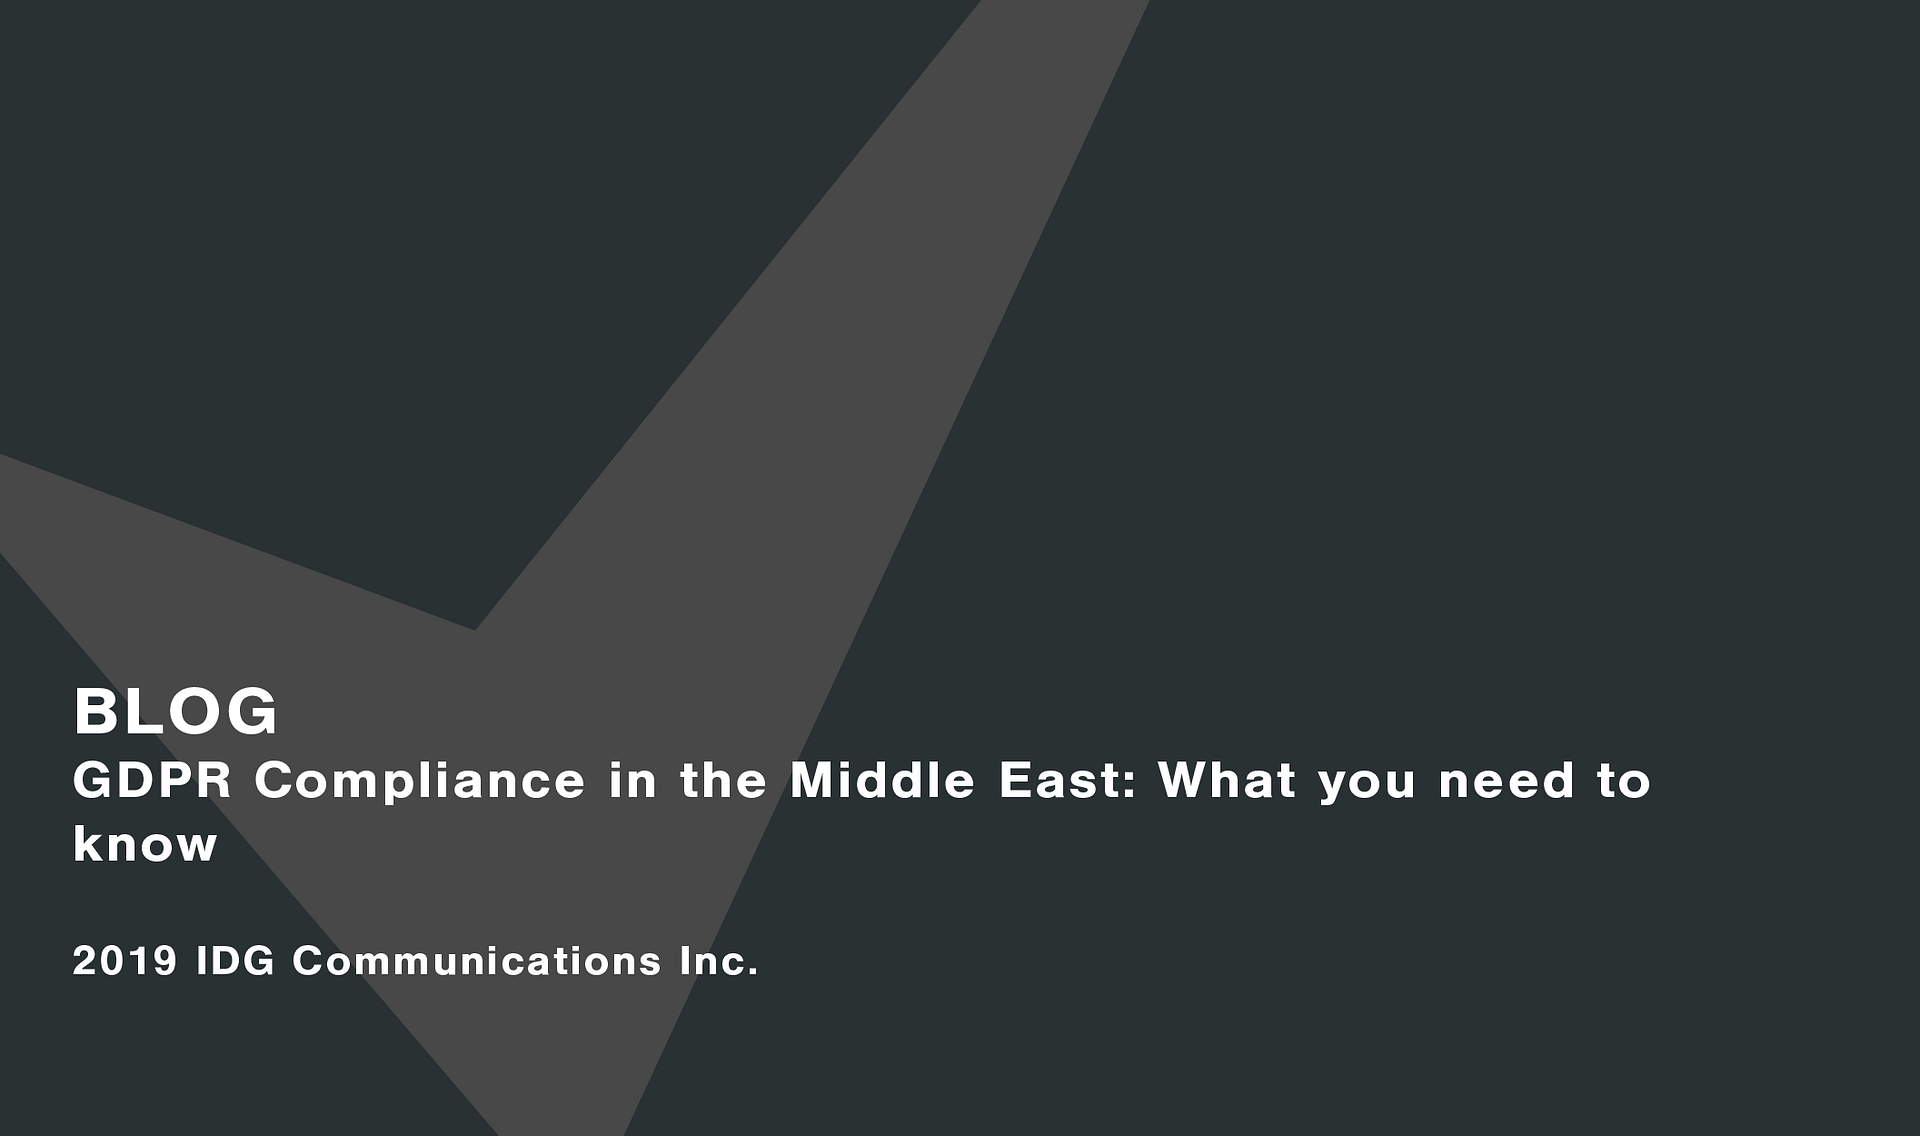 GDPR compliance in the Middle East: What you need to know Cassie personal information & consent management